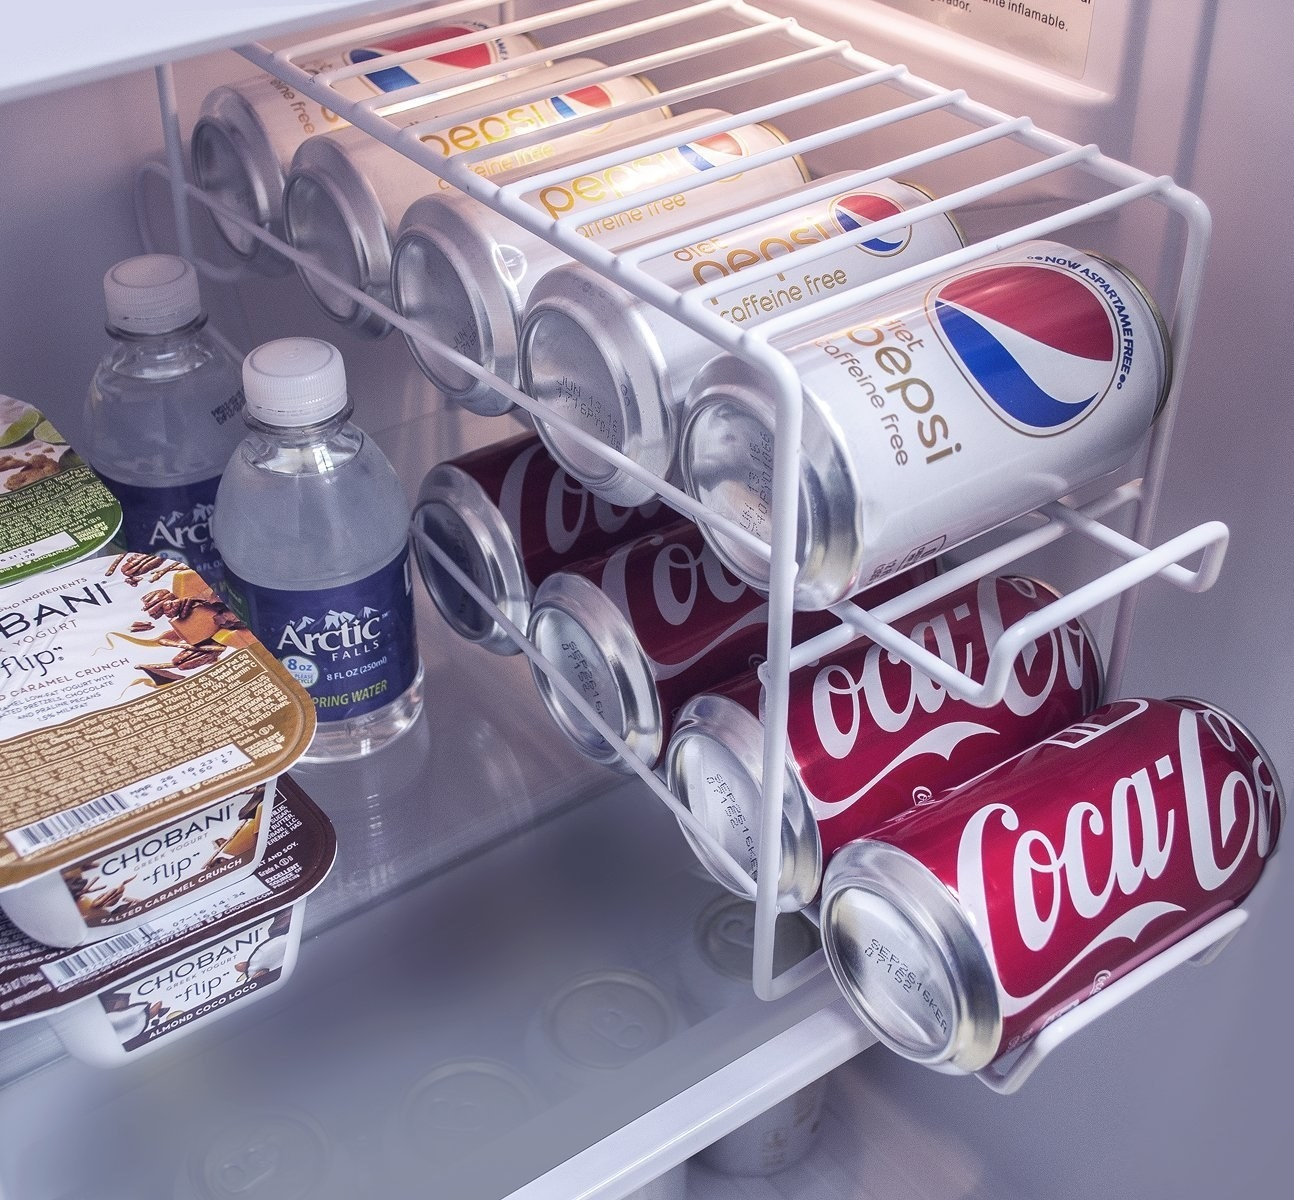 Soda can rack placed in fridge to easily organizer cans, There are two tiers so it can fit 12 cans